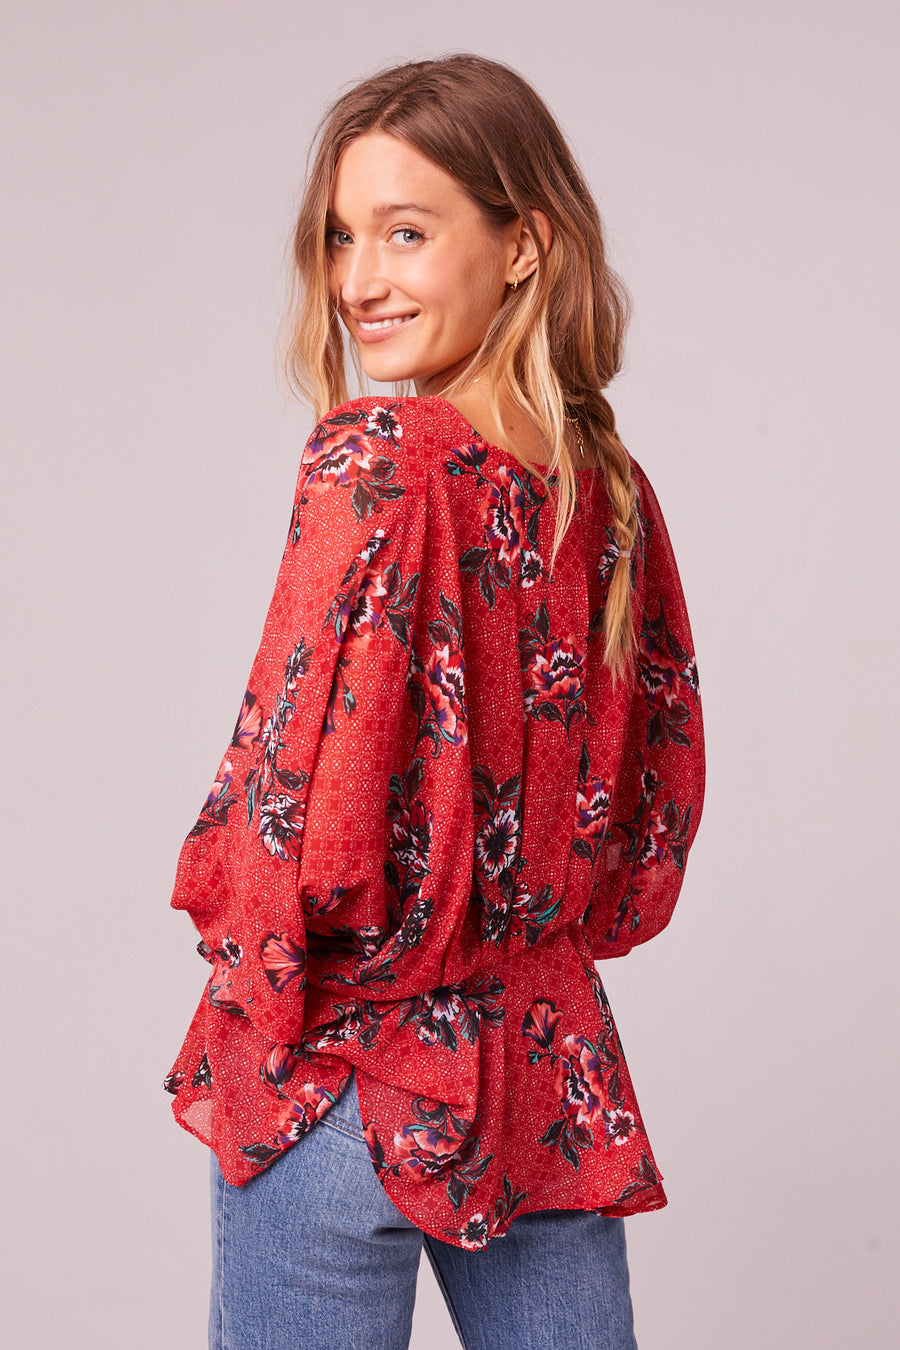 Mendocino Red Floral Batwing Sleeve Top Master